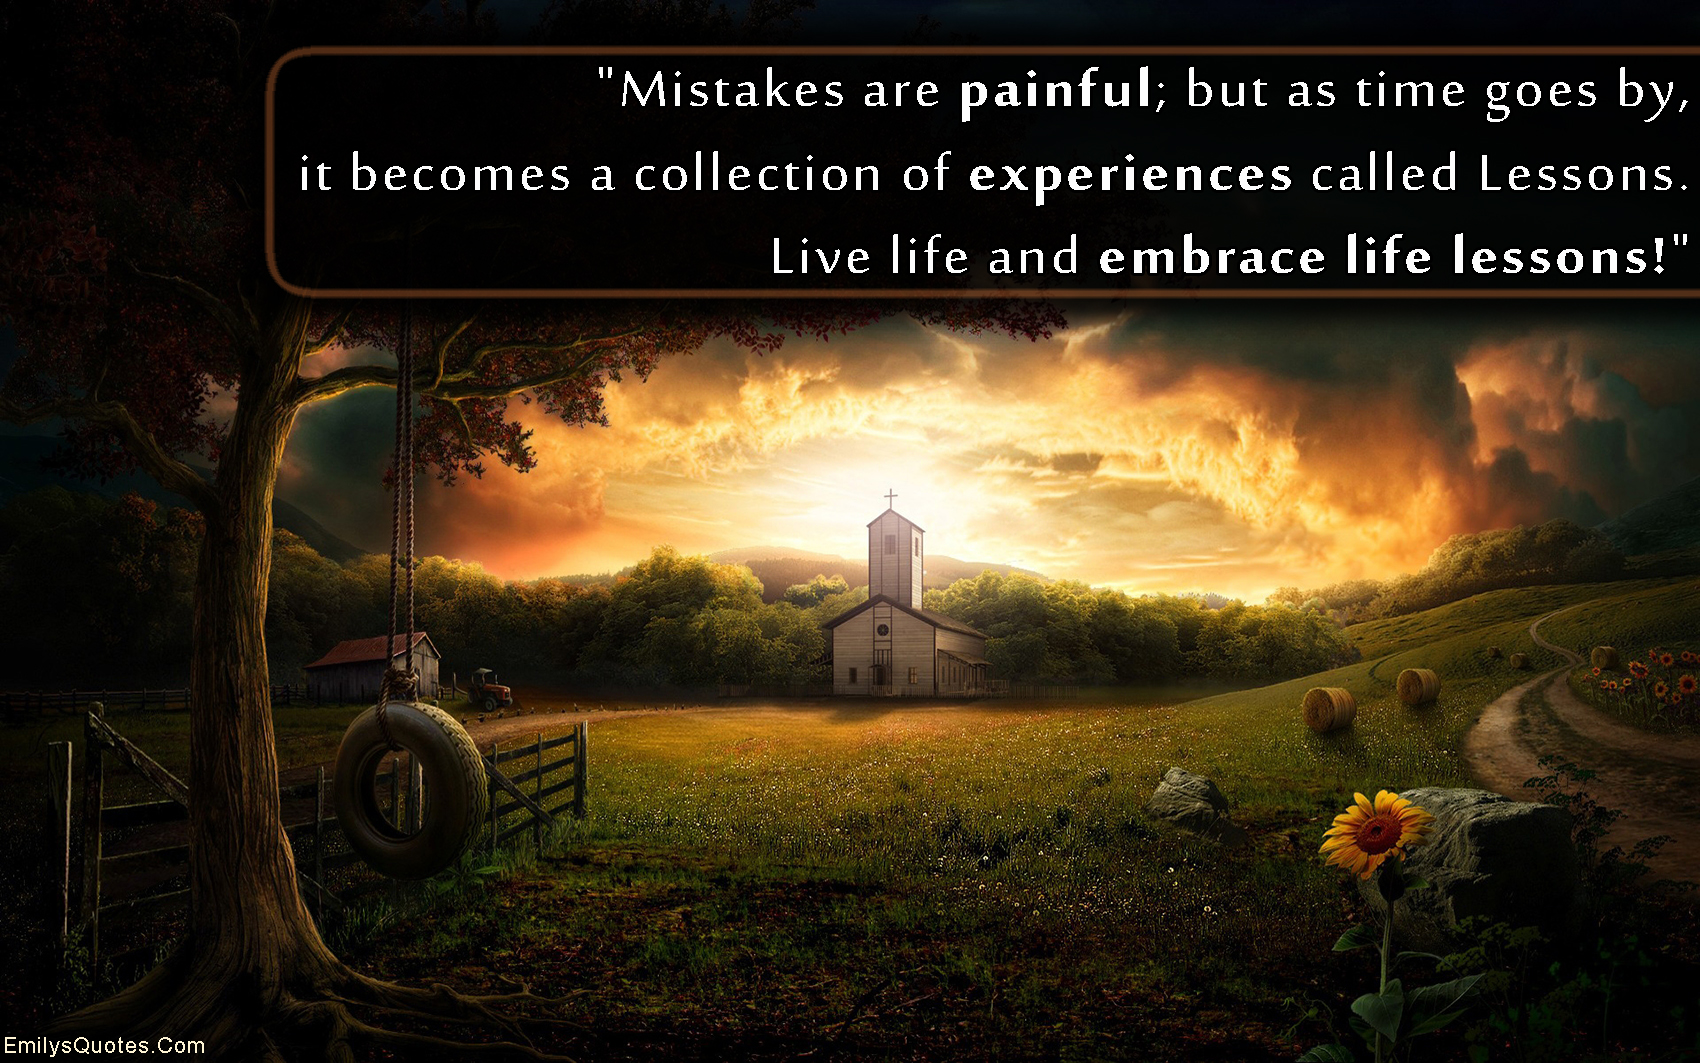 Inspirational Quotes About Life Lessons Mistakes Are Painful But As Time Goes By It Becomes A Collection